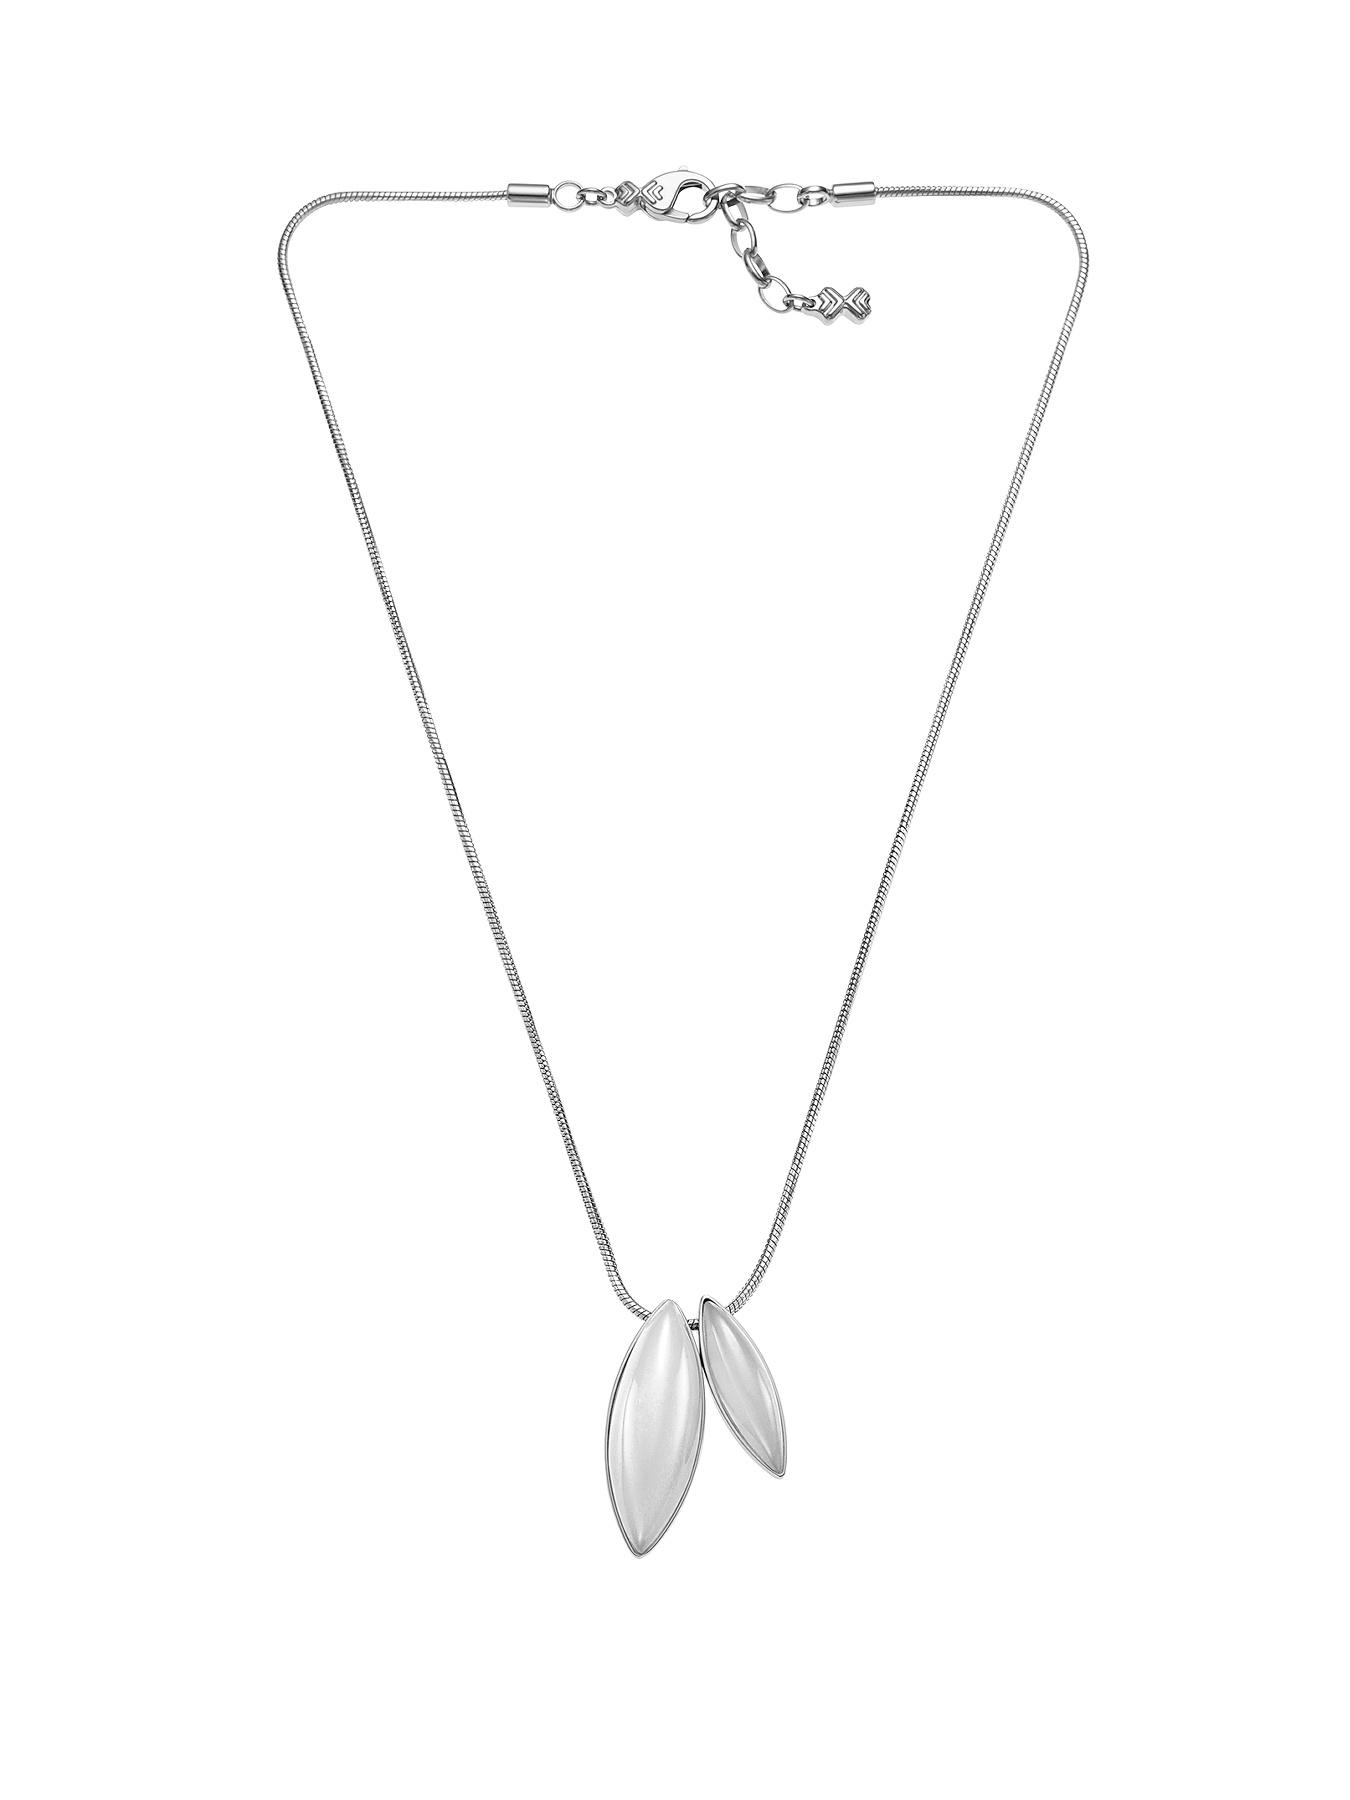 Skagen Ditte Stainless Steel Necklace